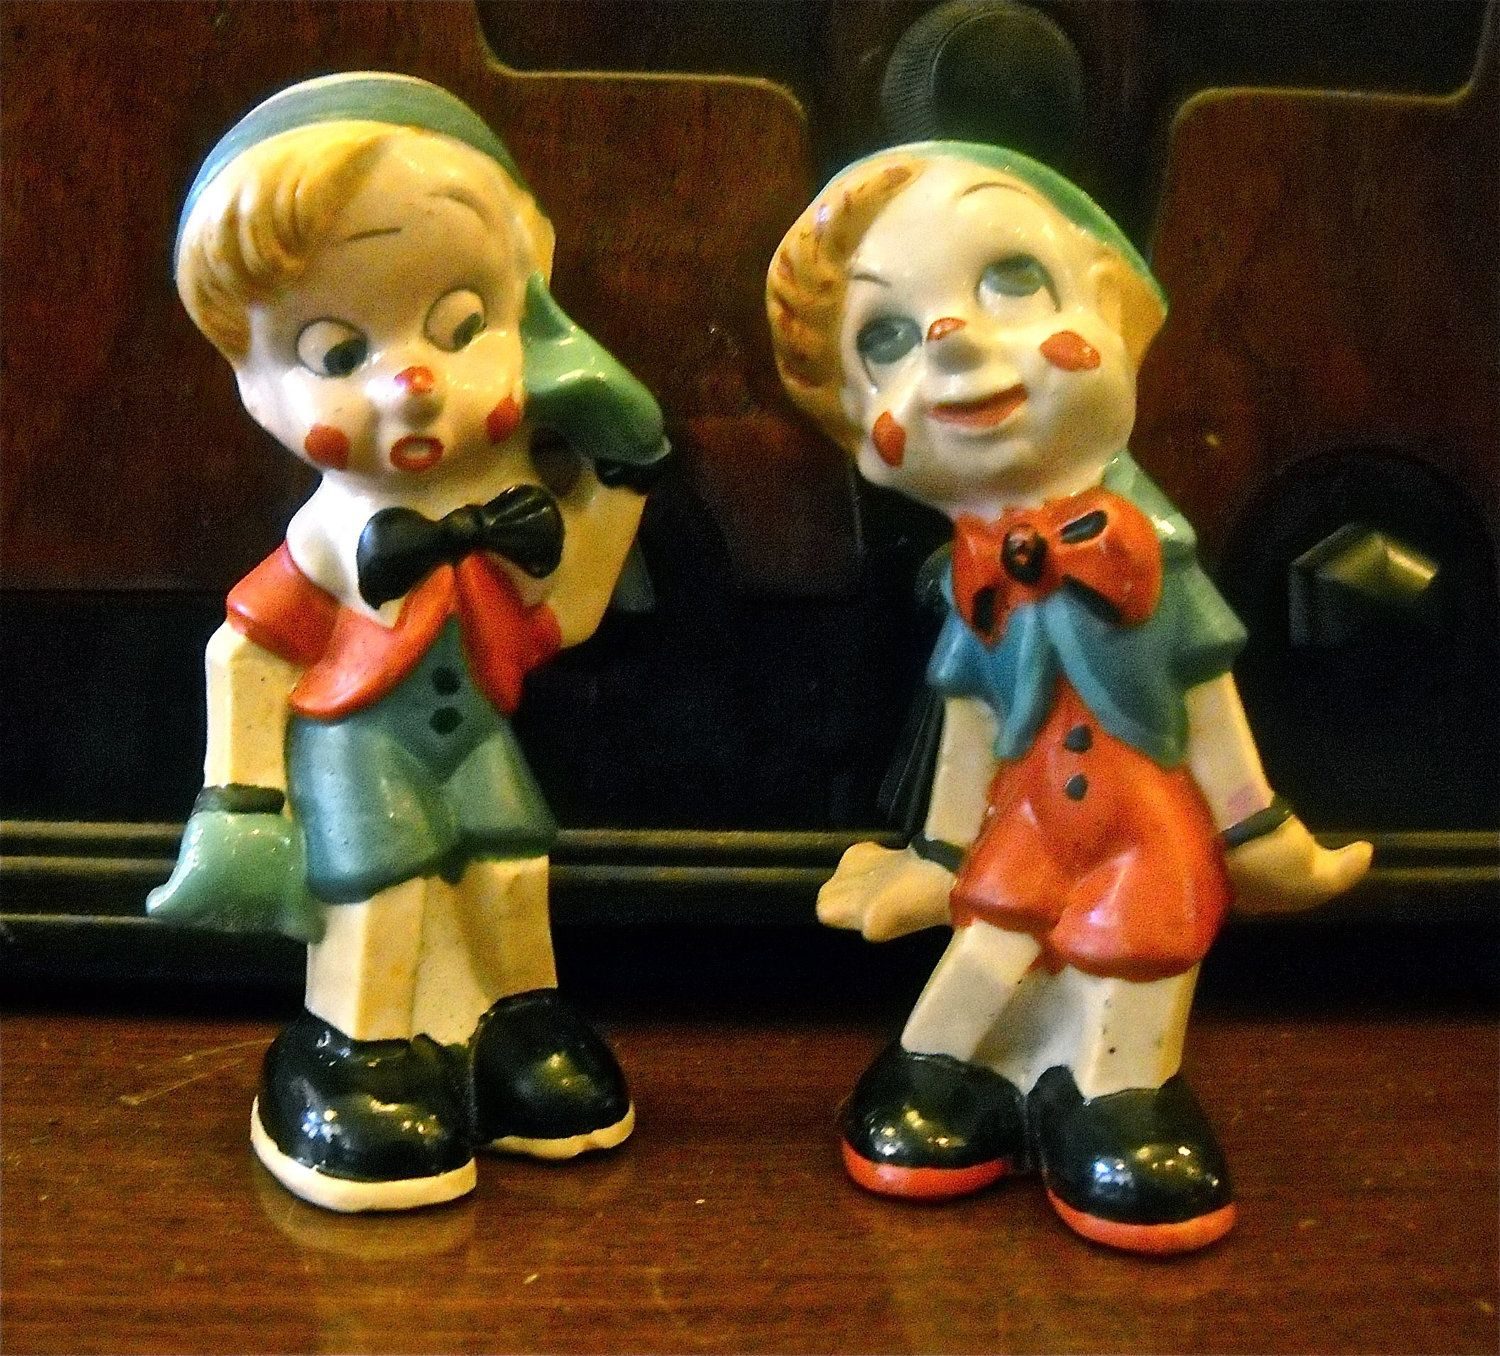 Vintage Japan Pinocchio Salt and Pepper Shakers.